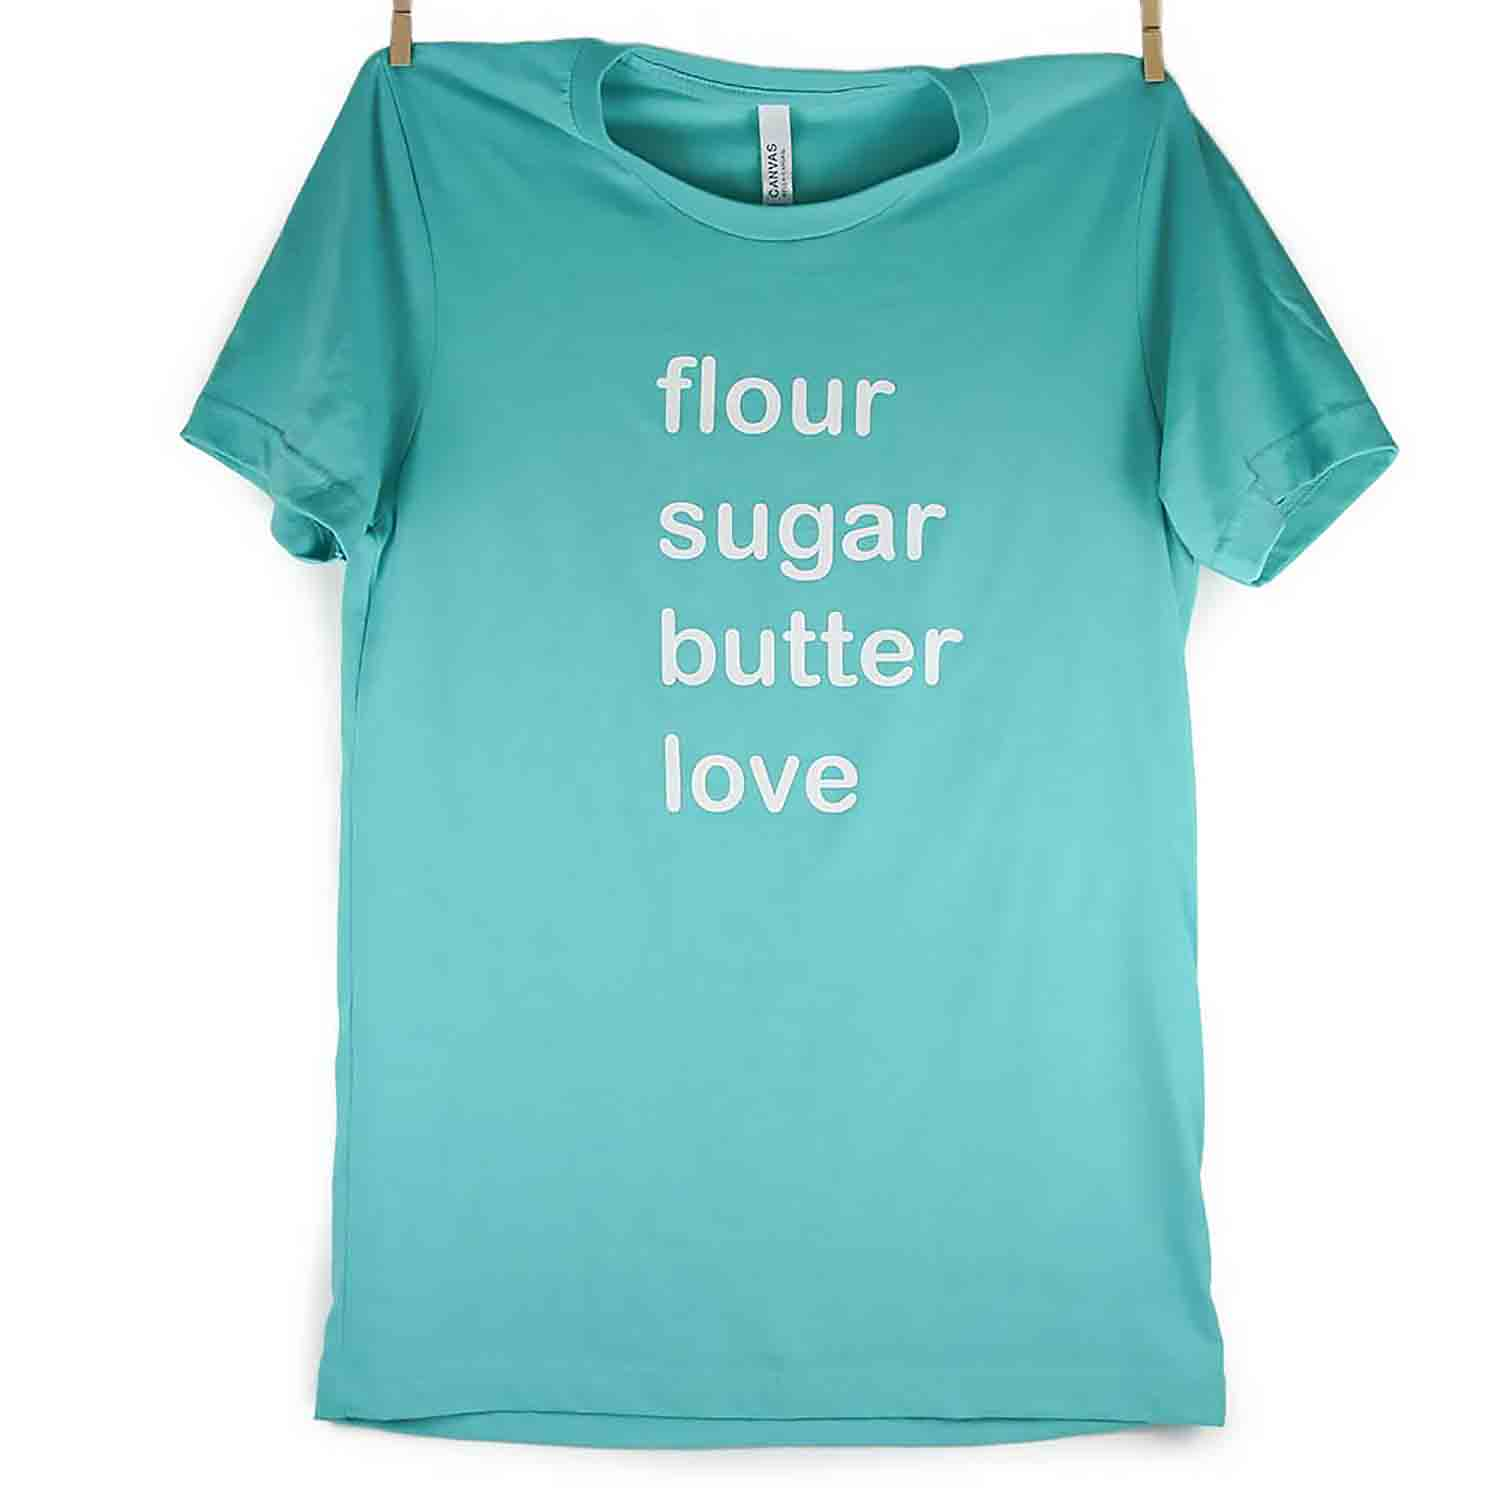 Teal Flour Sugar Butter Love T-Shirt - Double Extra Large